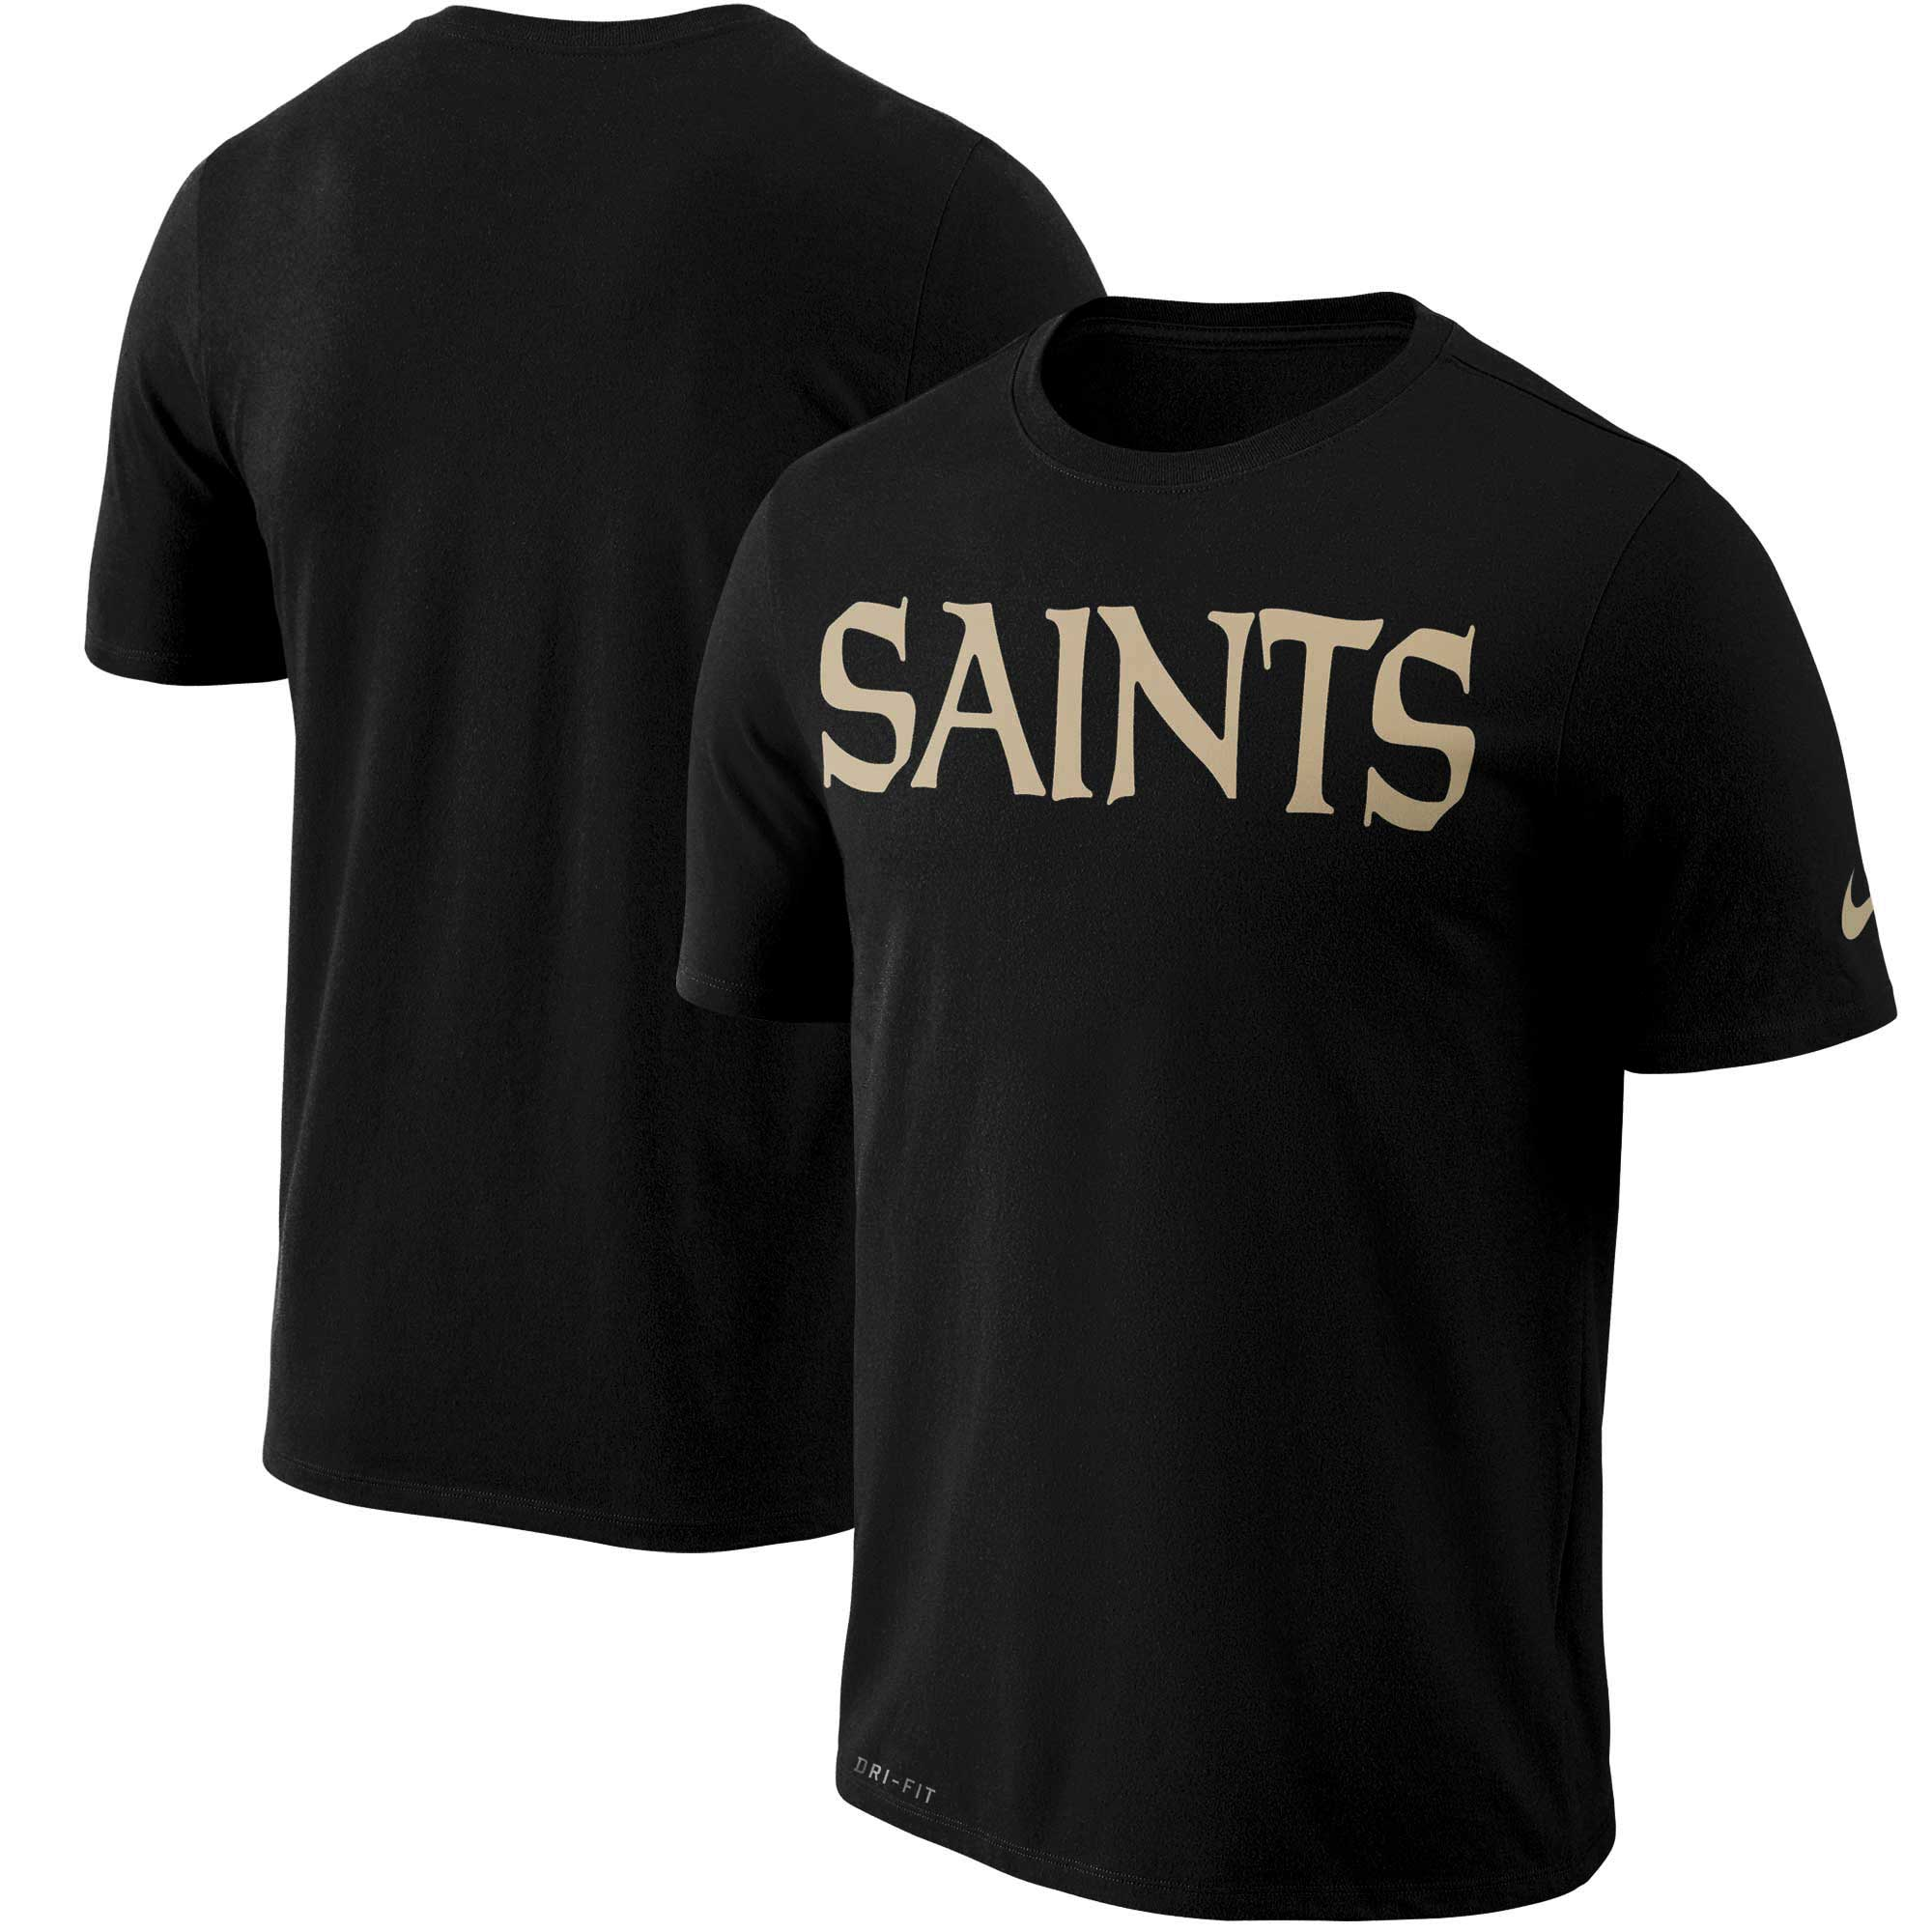 New Orleans Saints Nike Dri-FIT Cotton Essential Wordmark T-Shirt - Black